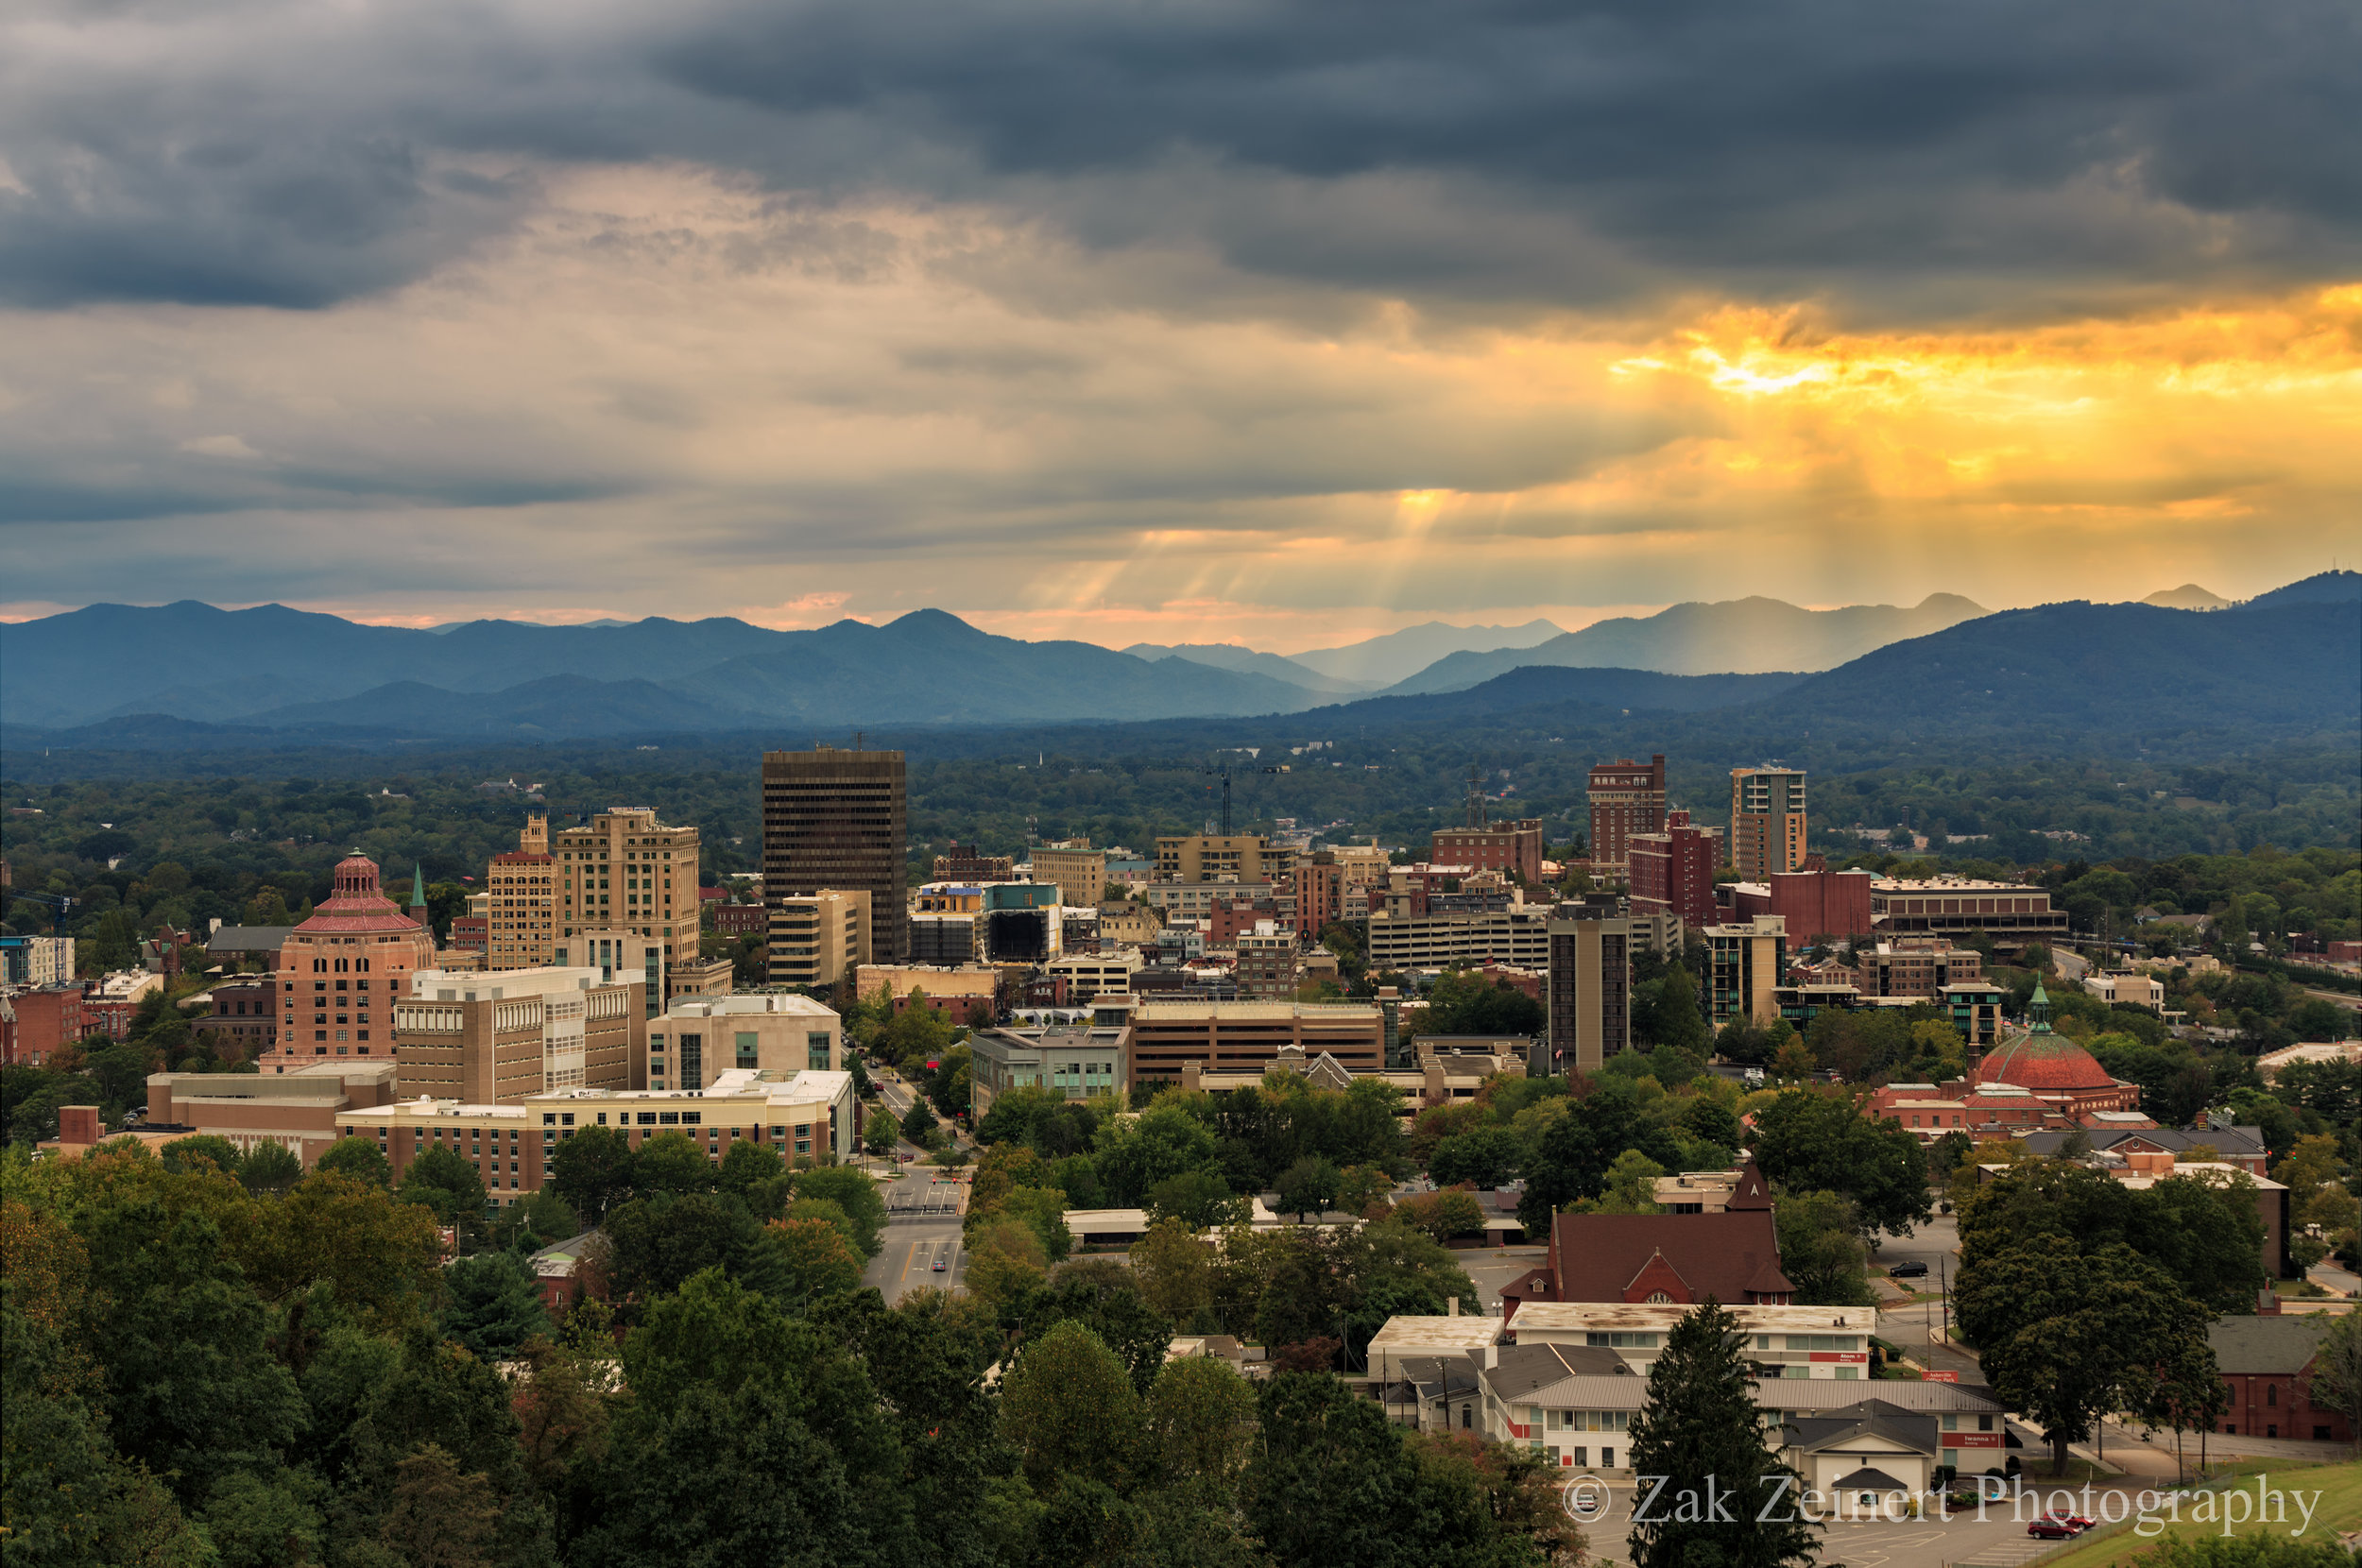 Asheville, North Carolina at Sunset